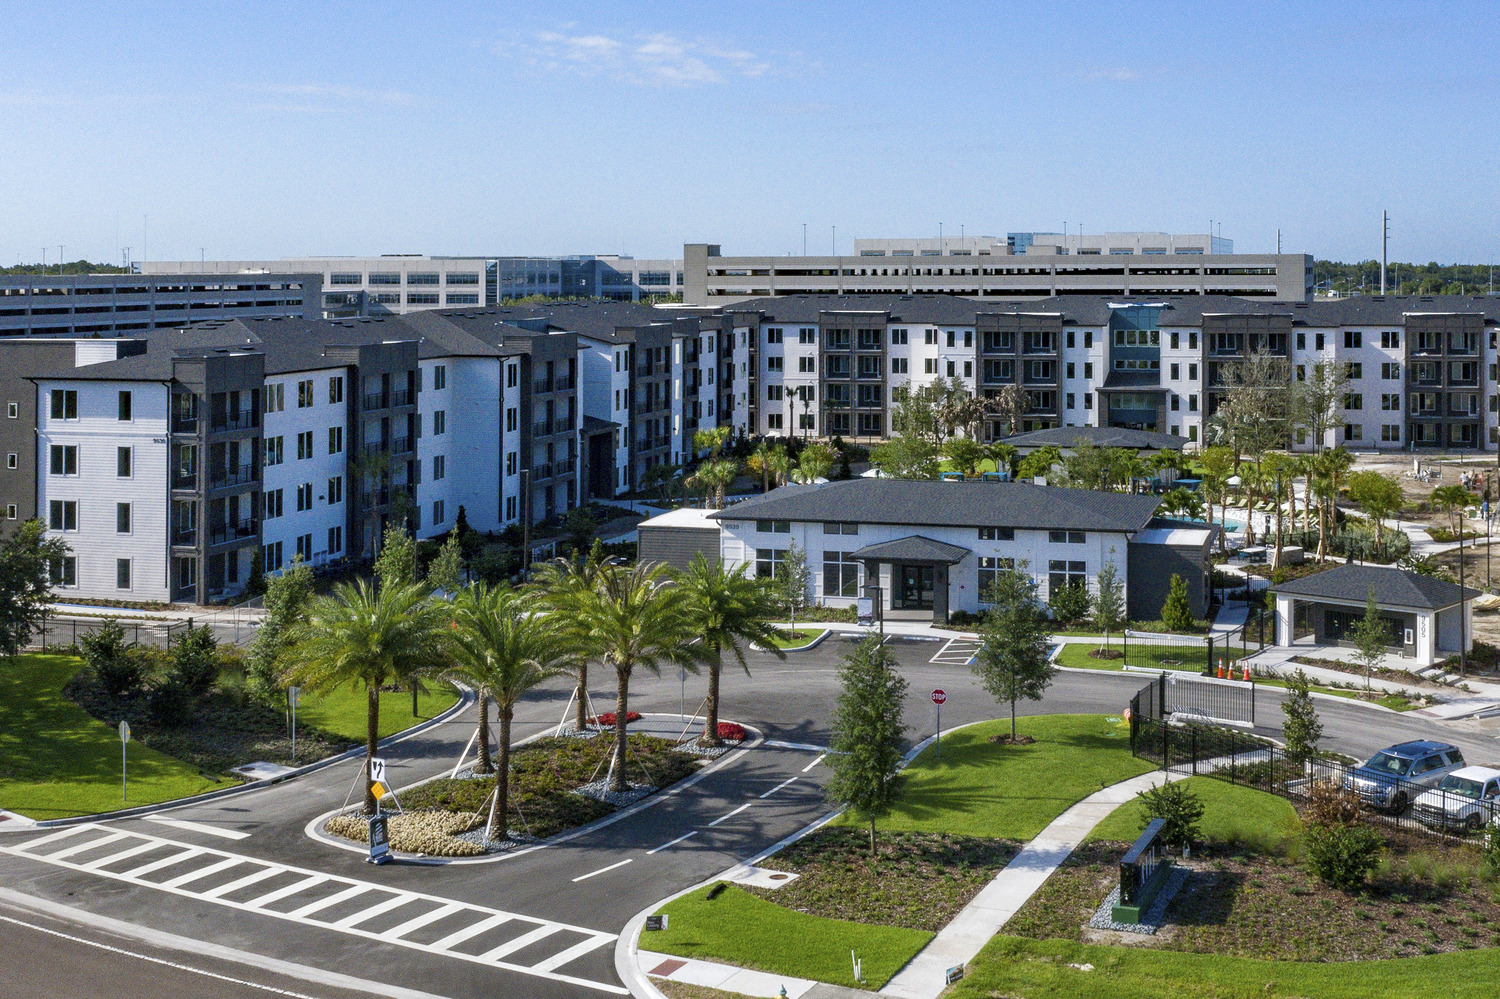 CBG builds The Avli at Crosstown Center, a Multi-Building Luxury Garden-Style Community with Clubhouse in Brandon, FL - Image #1